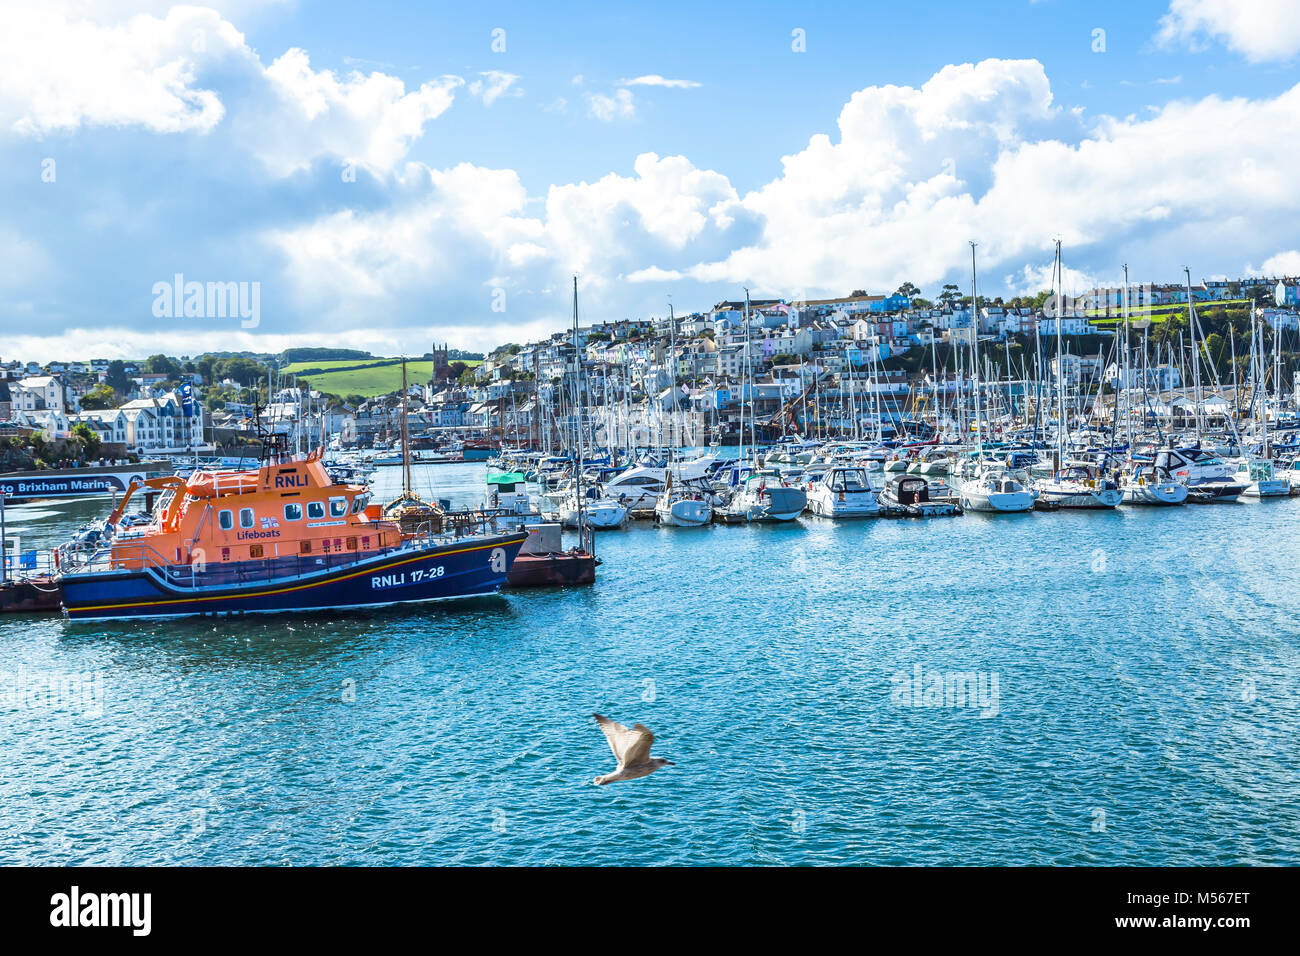 An RNLI Lifeboat mooed in Brixham Harbour with other boats. - Stock Image